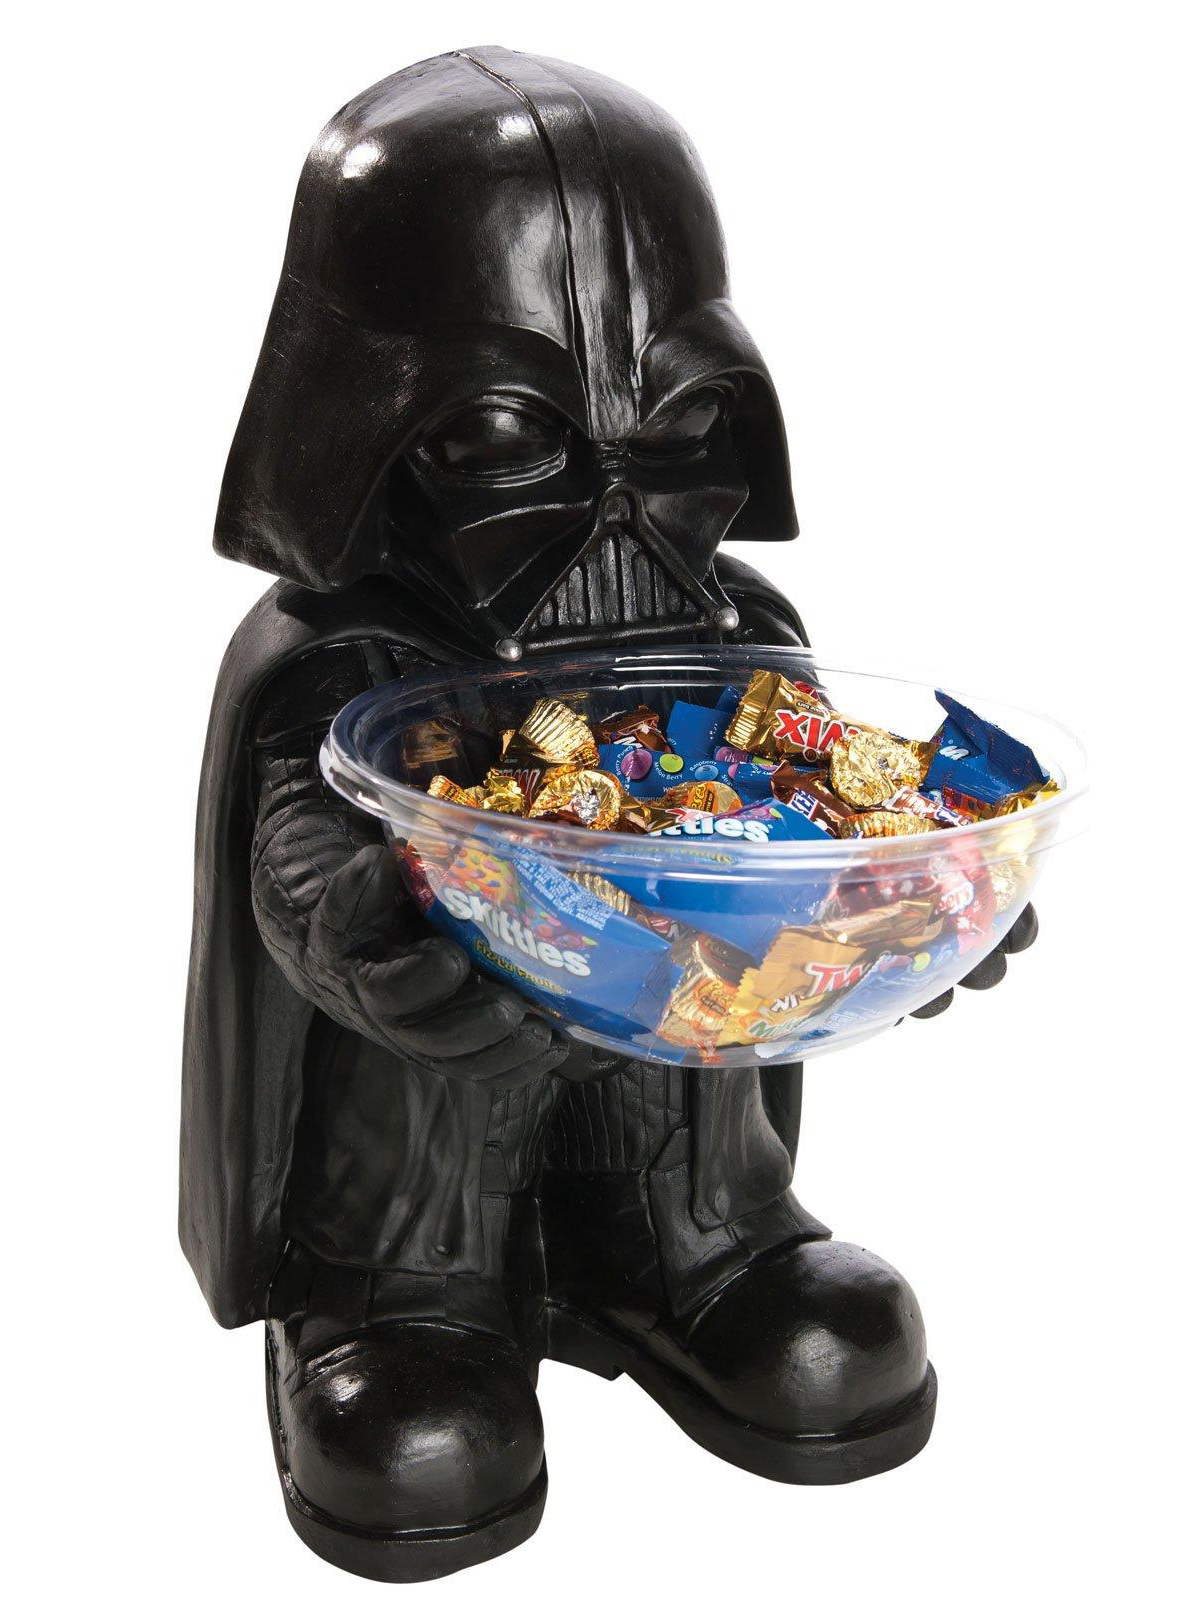 Rubie's Star Wars - Darth Vader Candy Bowl And Holder